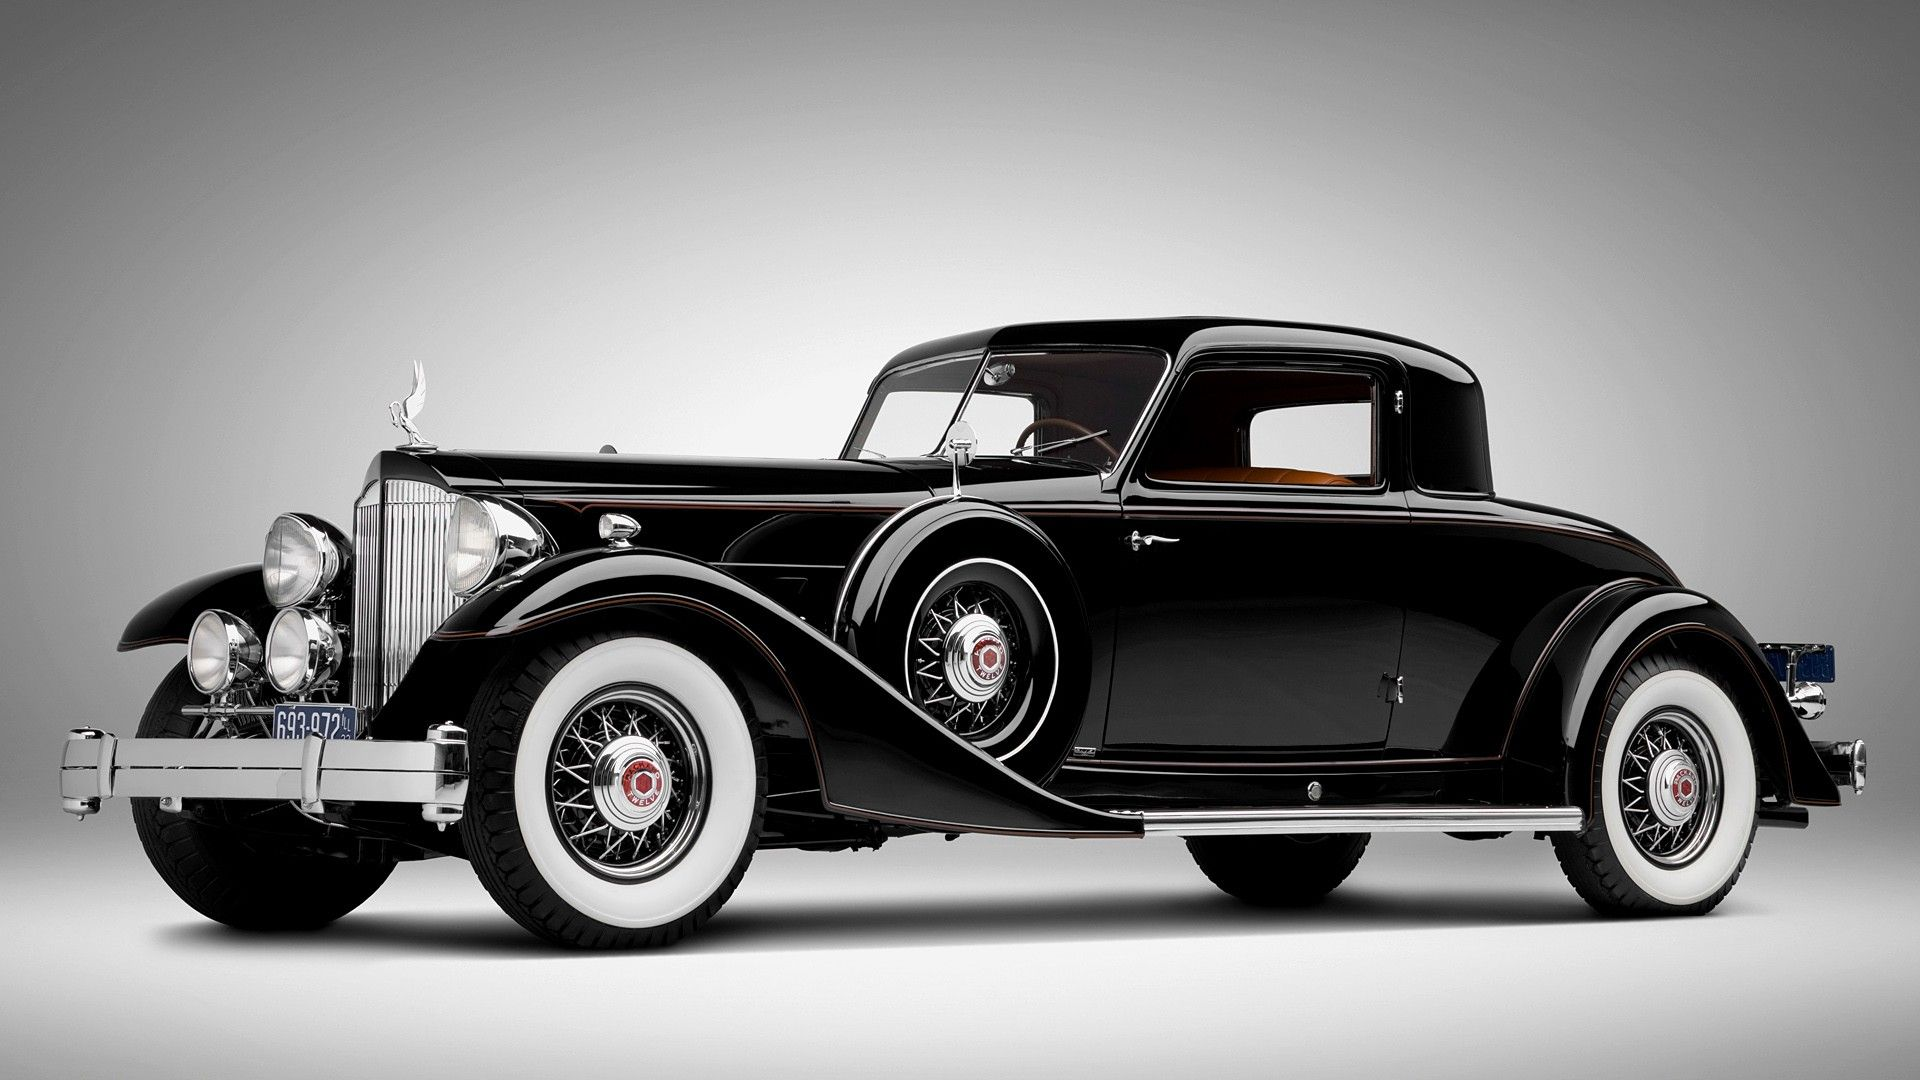 1933 Packard Twelve Coupe | Classic cars vintage, Antique cars, Packard cars